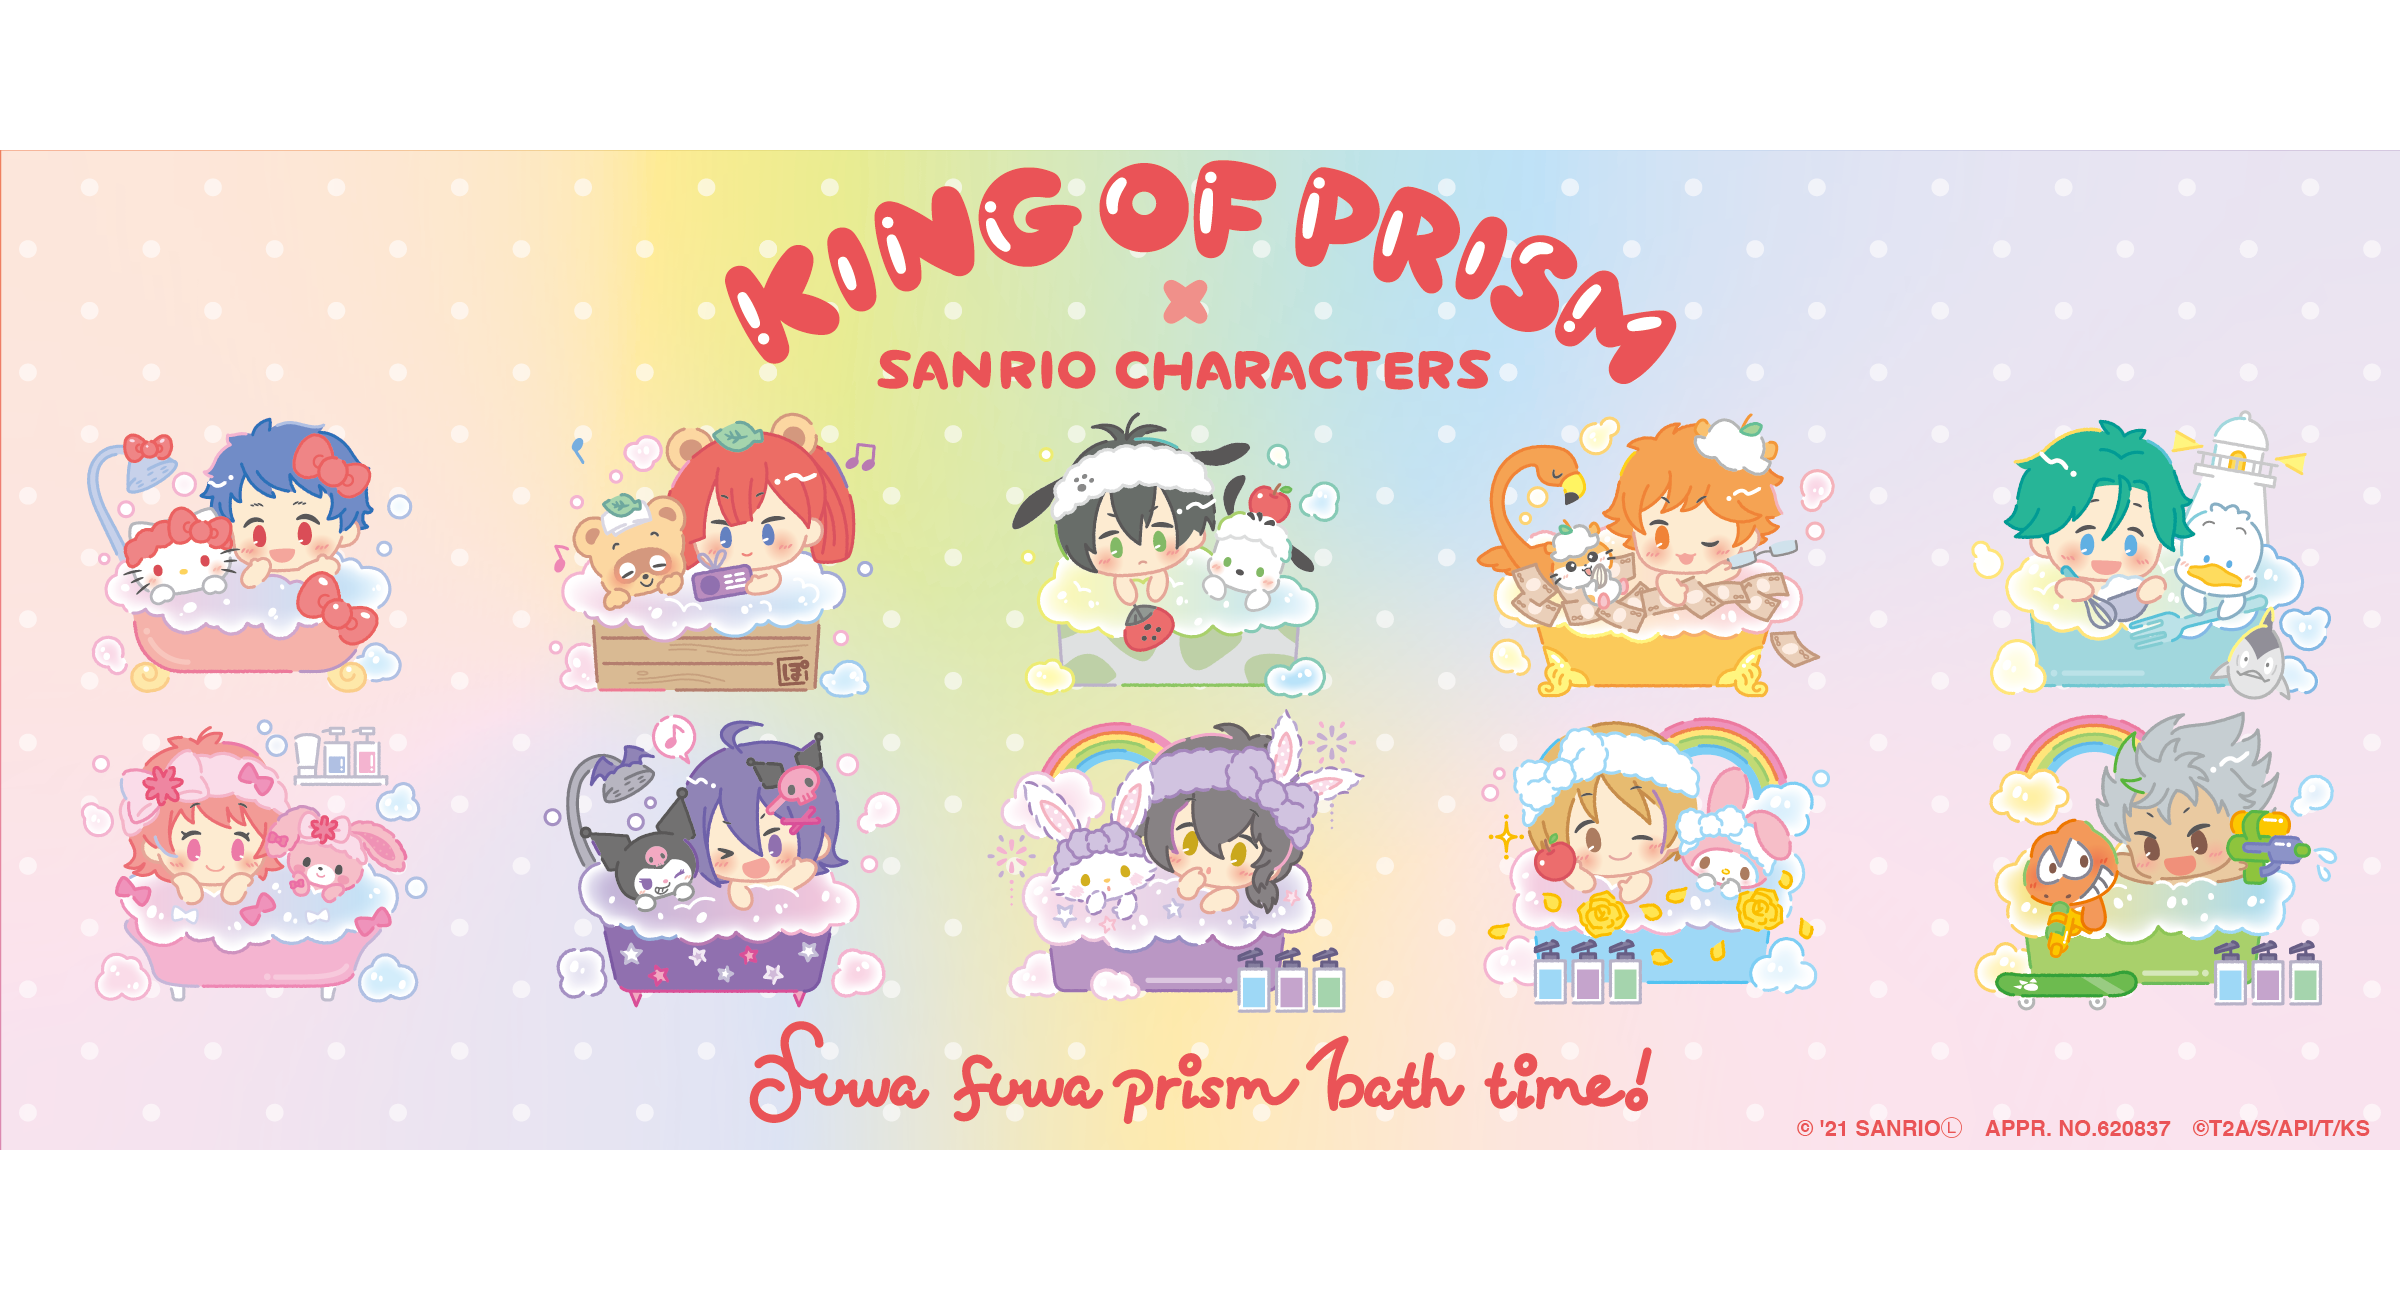 「KING OF PRISM」×「SANRIO CHARACTERS」1